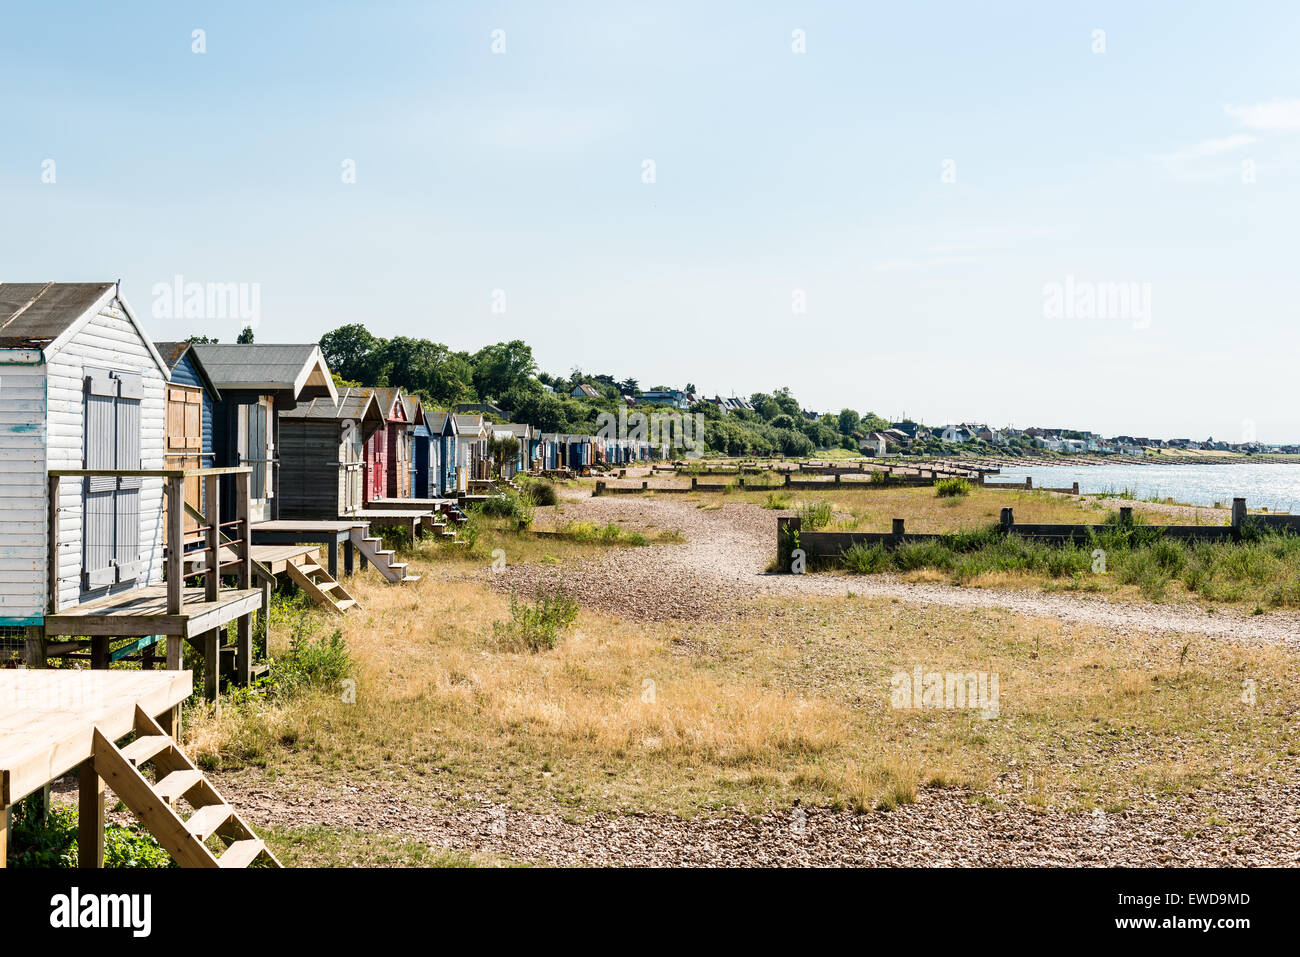 Row of wooden beach huts along Whitstable beach Stock Photo